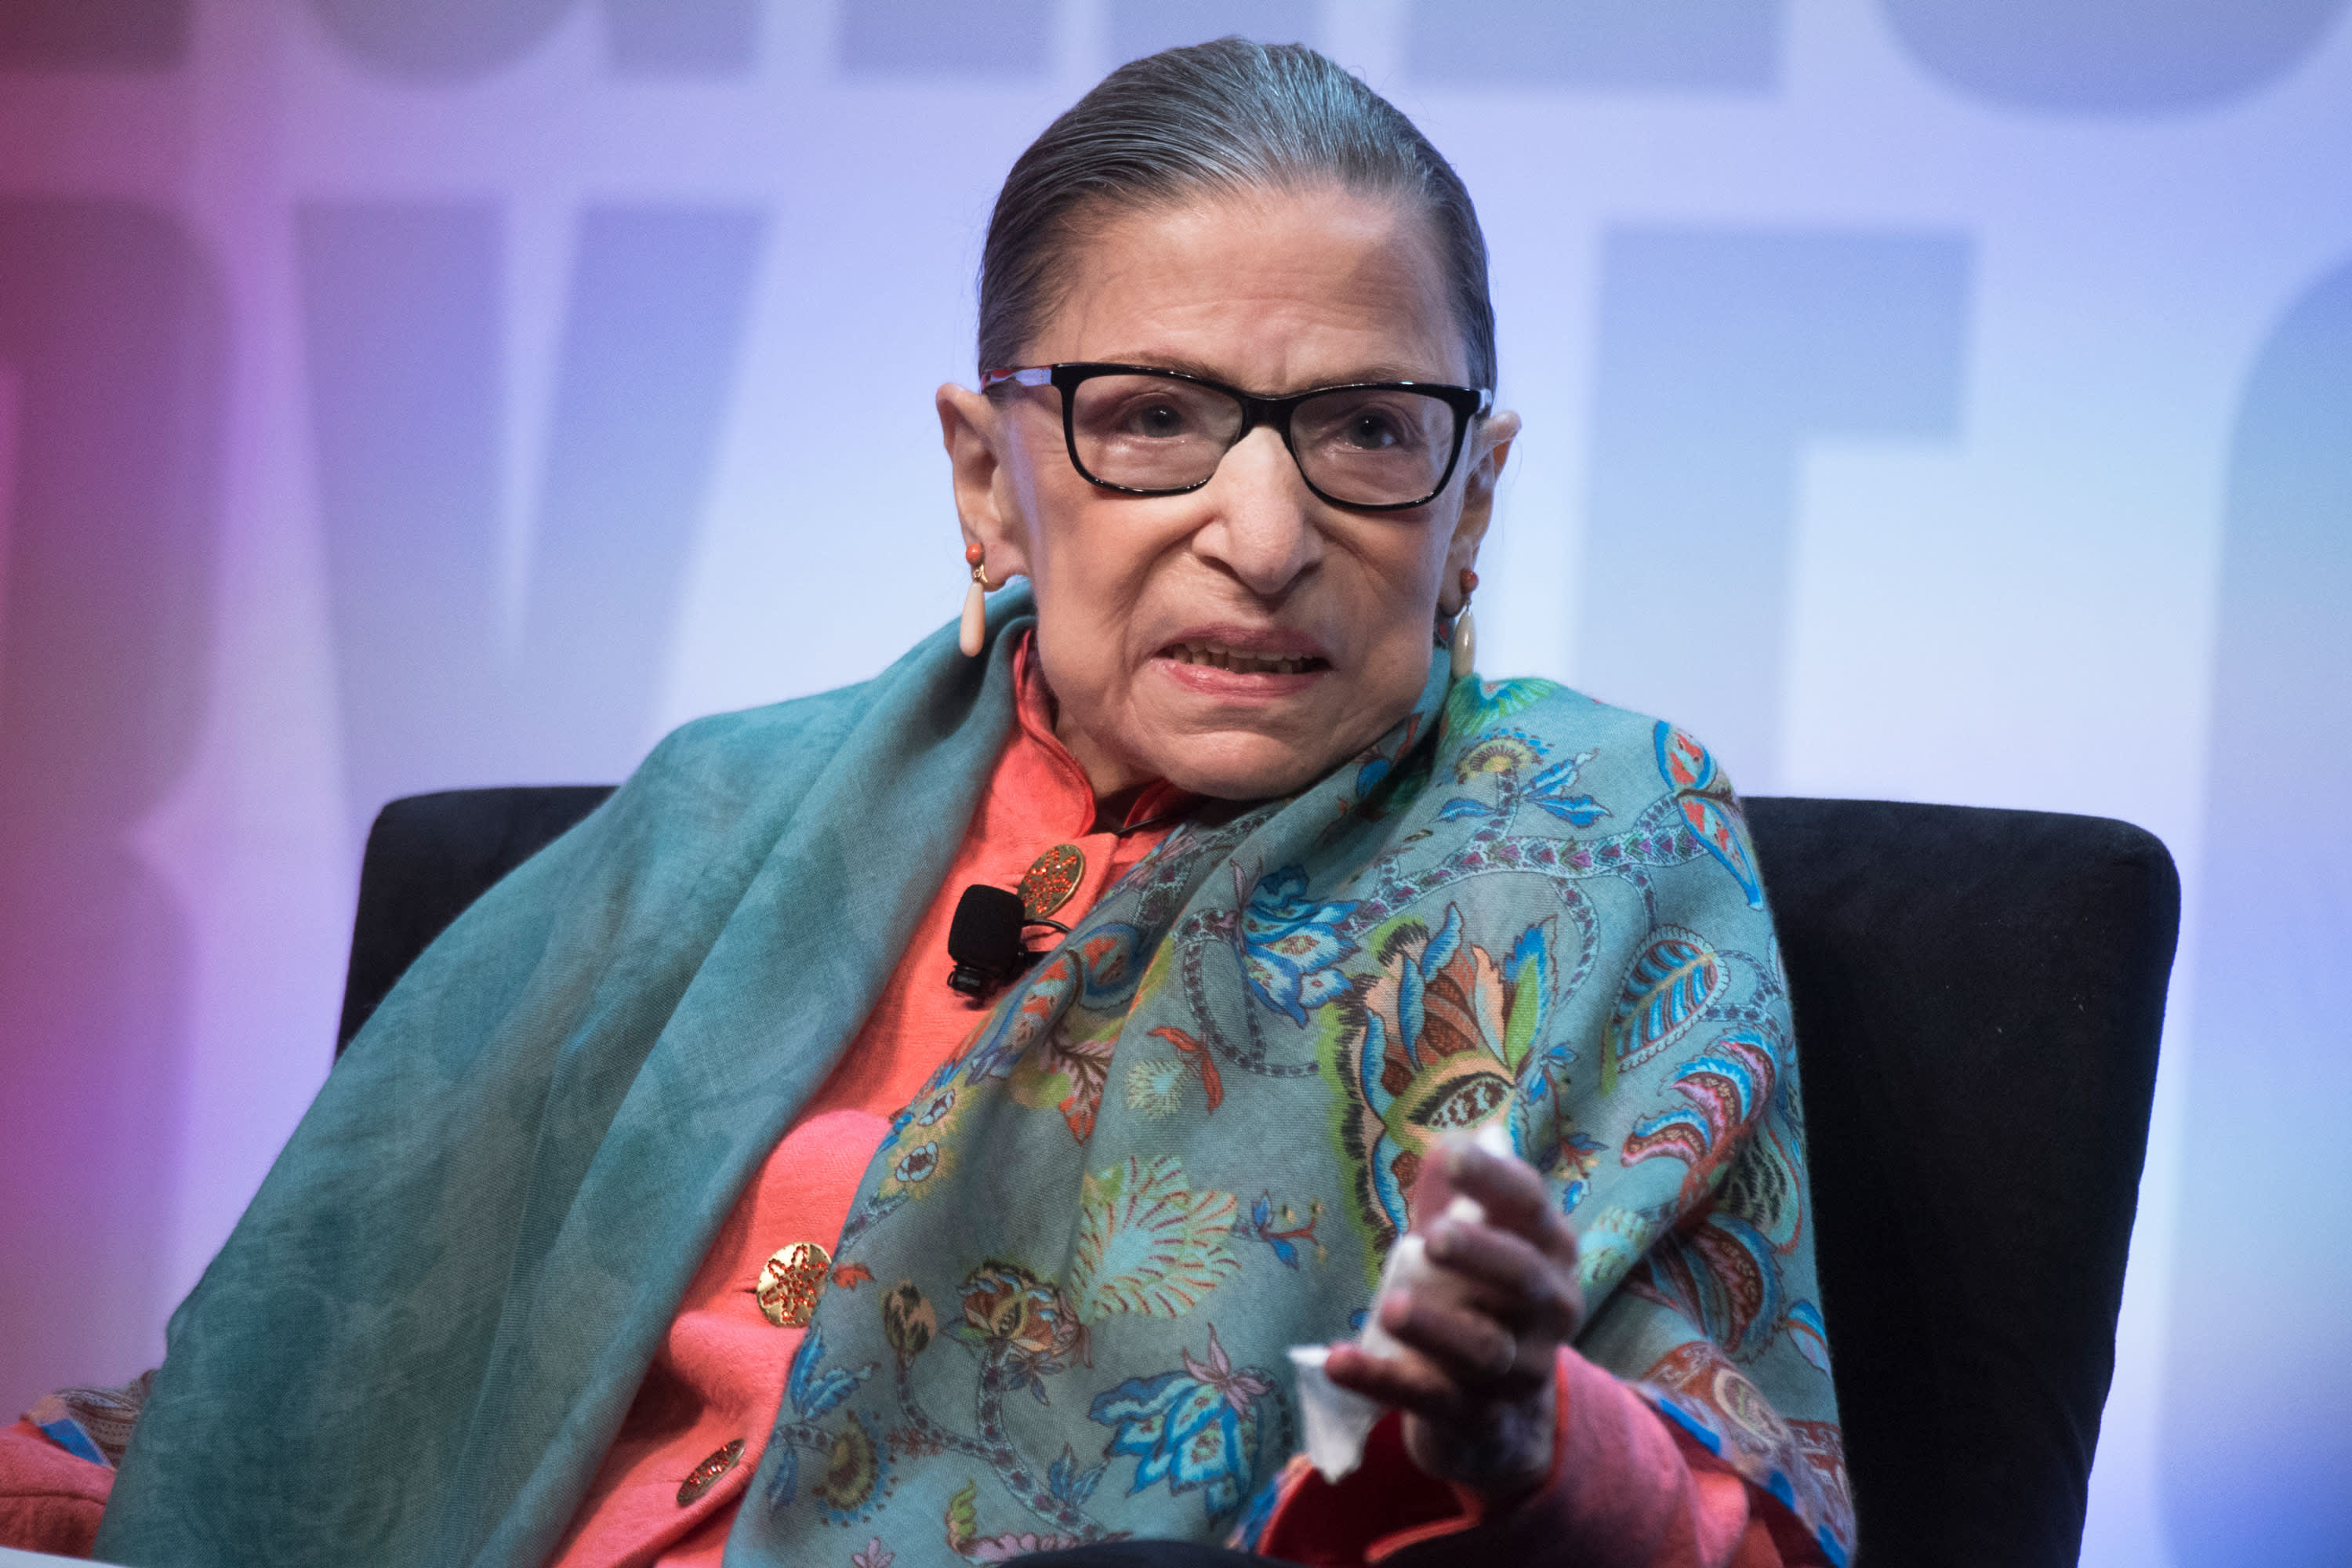 Justice Ruth Bader Ginsburg sits out Supreme Court arguments due to a stomach bug